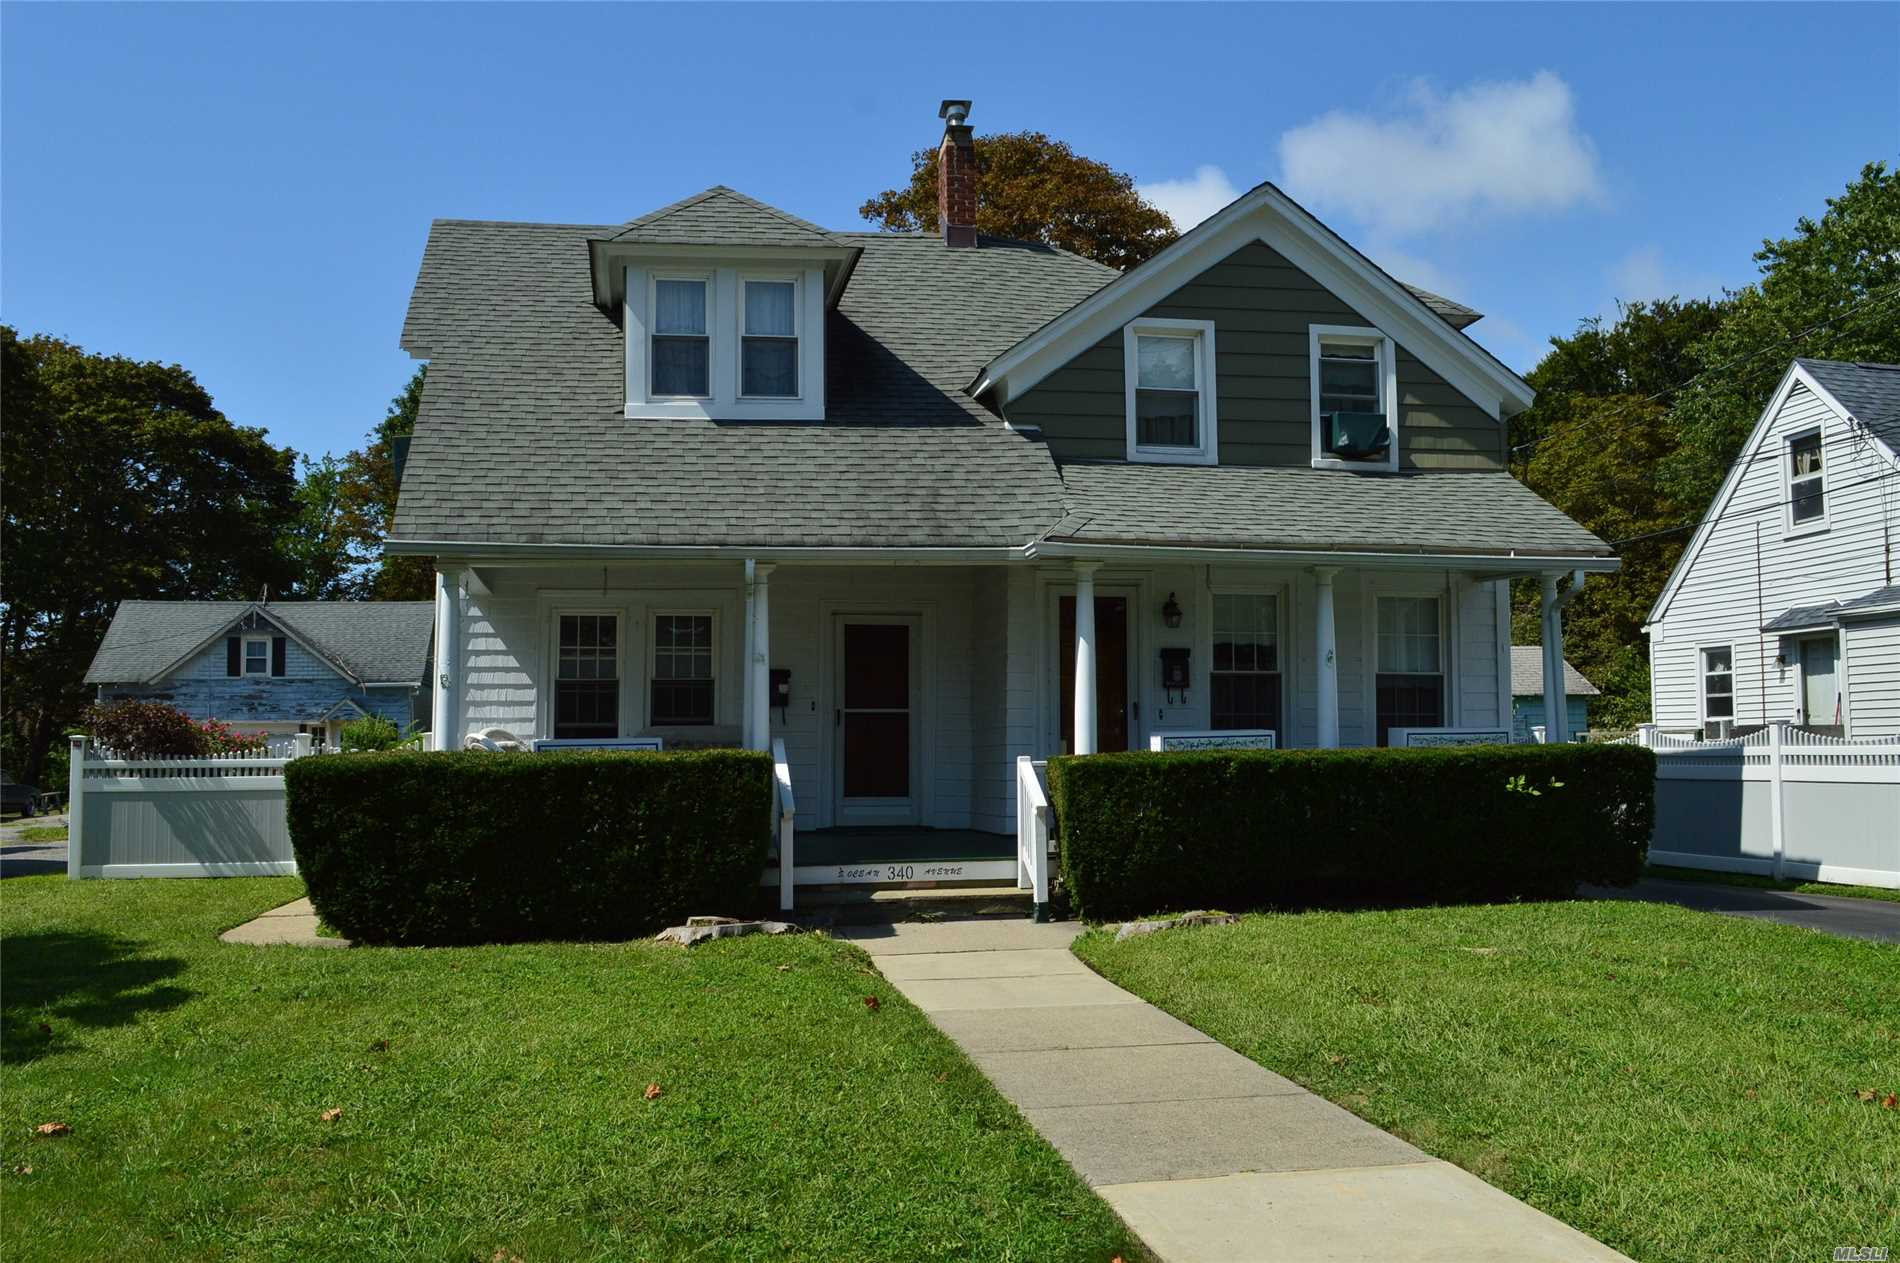 Legal 2 Family in Patchogue Village as per Village. Short walk to water and Train.